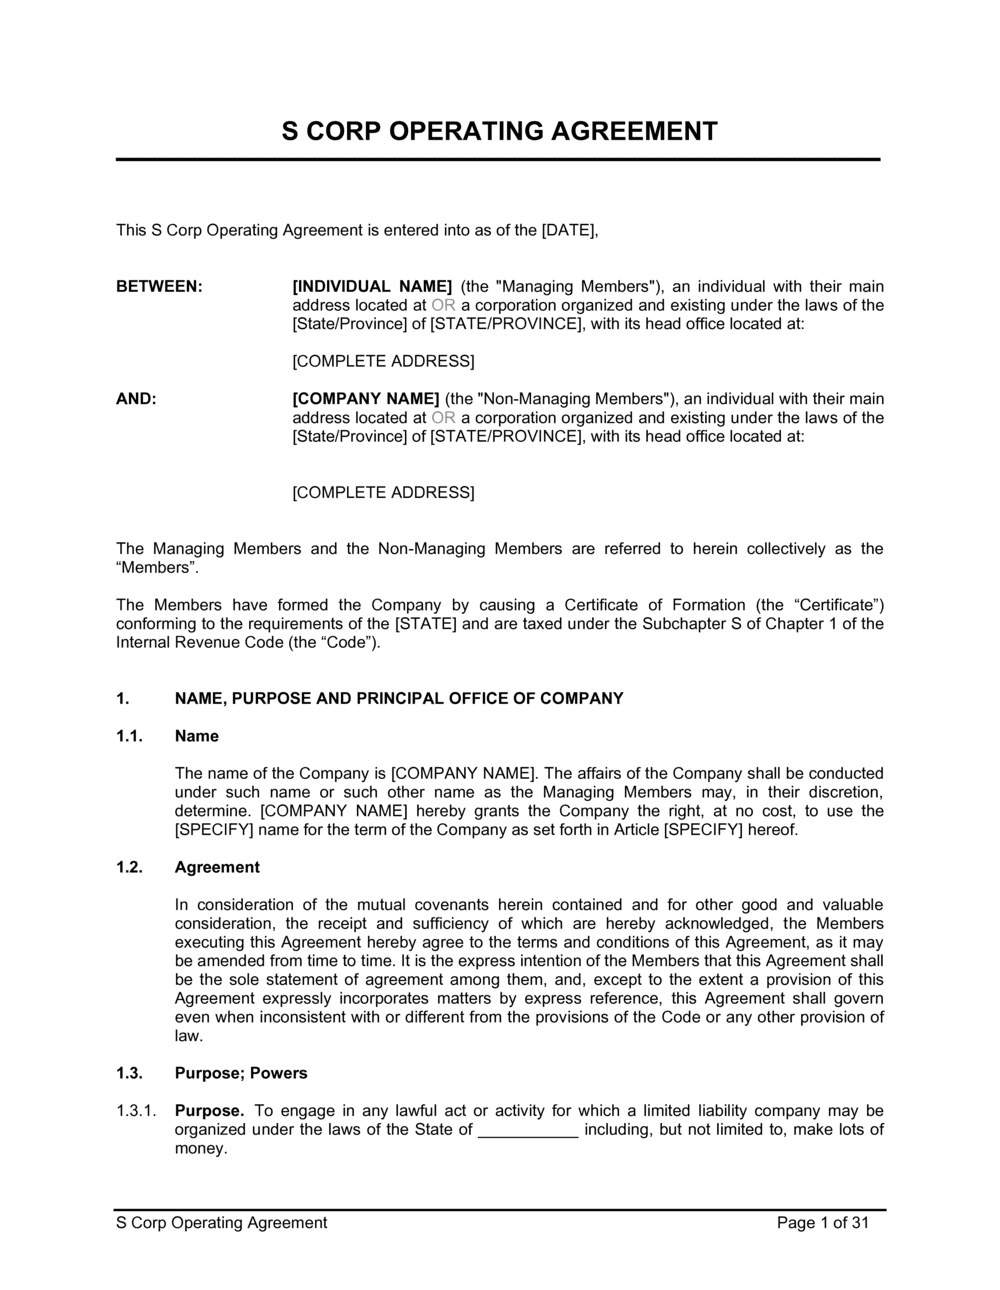 Business-in-a-Box's S Corp Operating Agreement Template